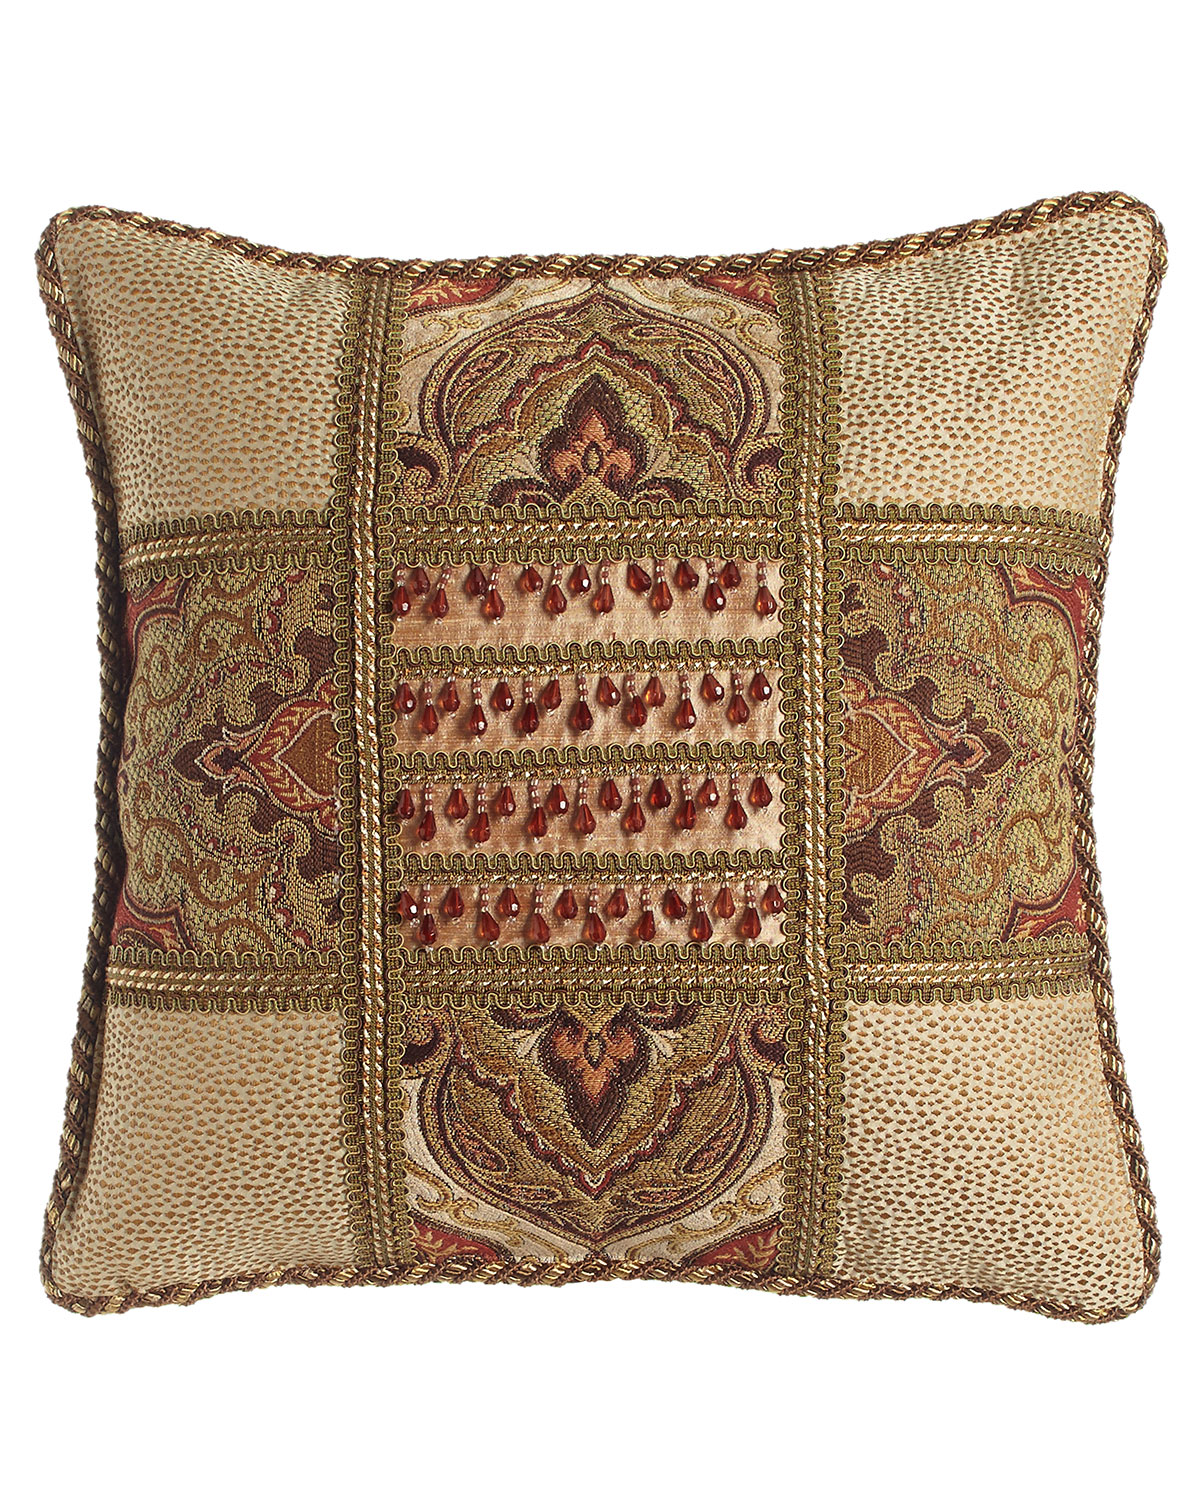 Dian Austin Couture Home Mediterrane Patch Pillow With Beaded Silk Center 18 Quot Sq